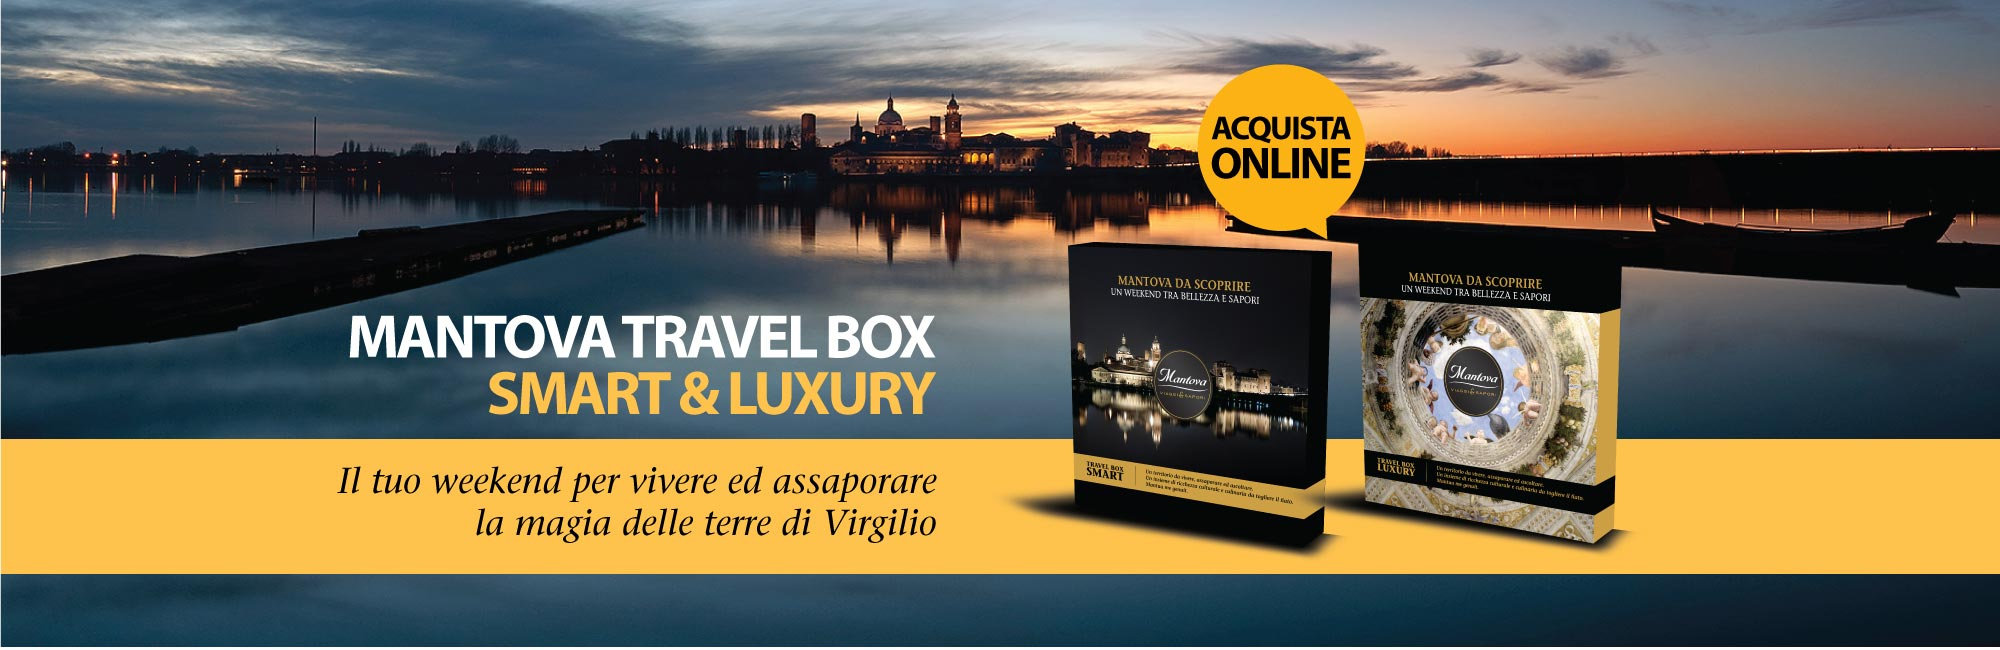 BANNER-MANTOVA-TRAVEL-BOX